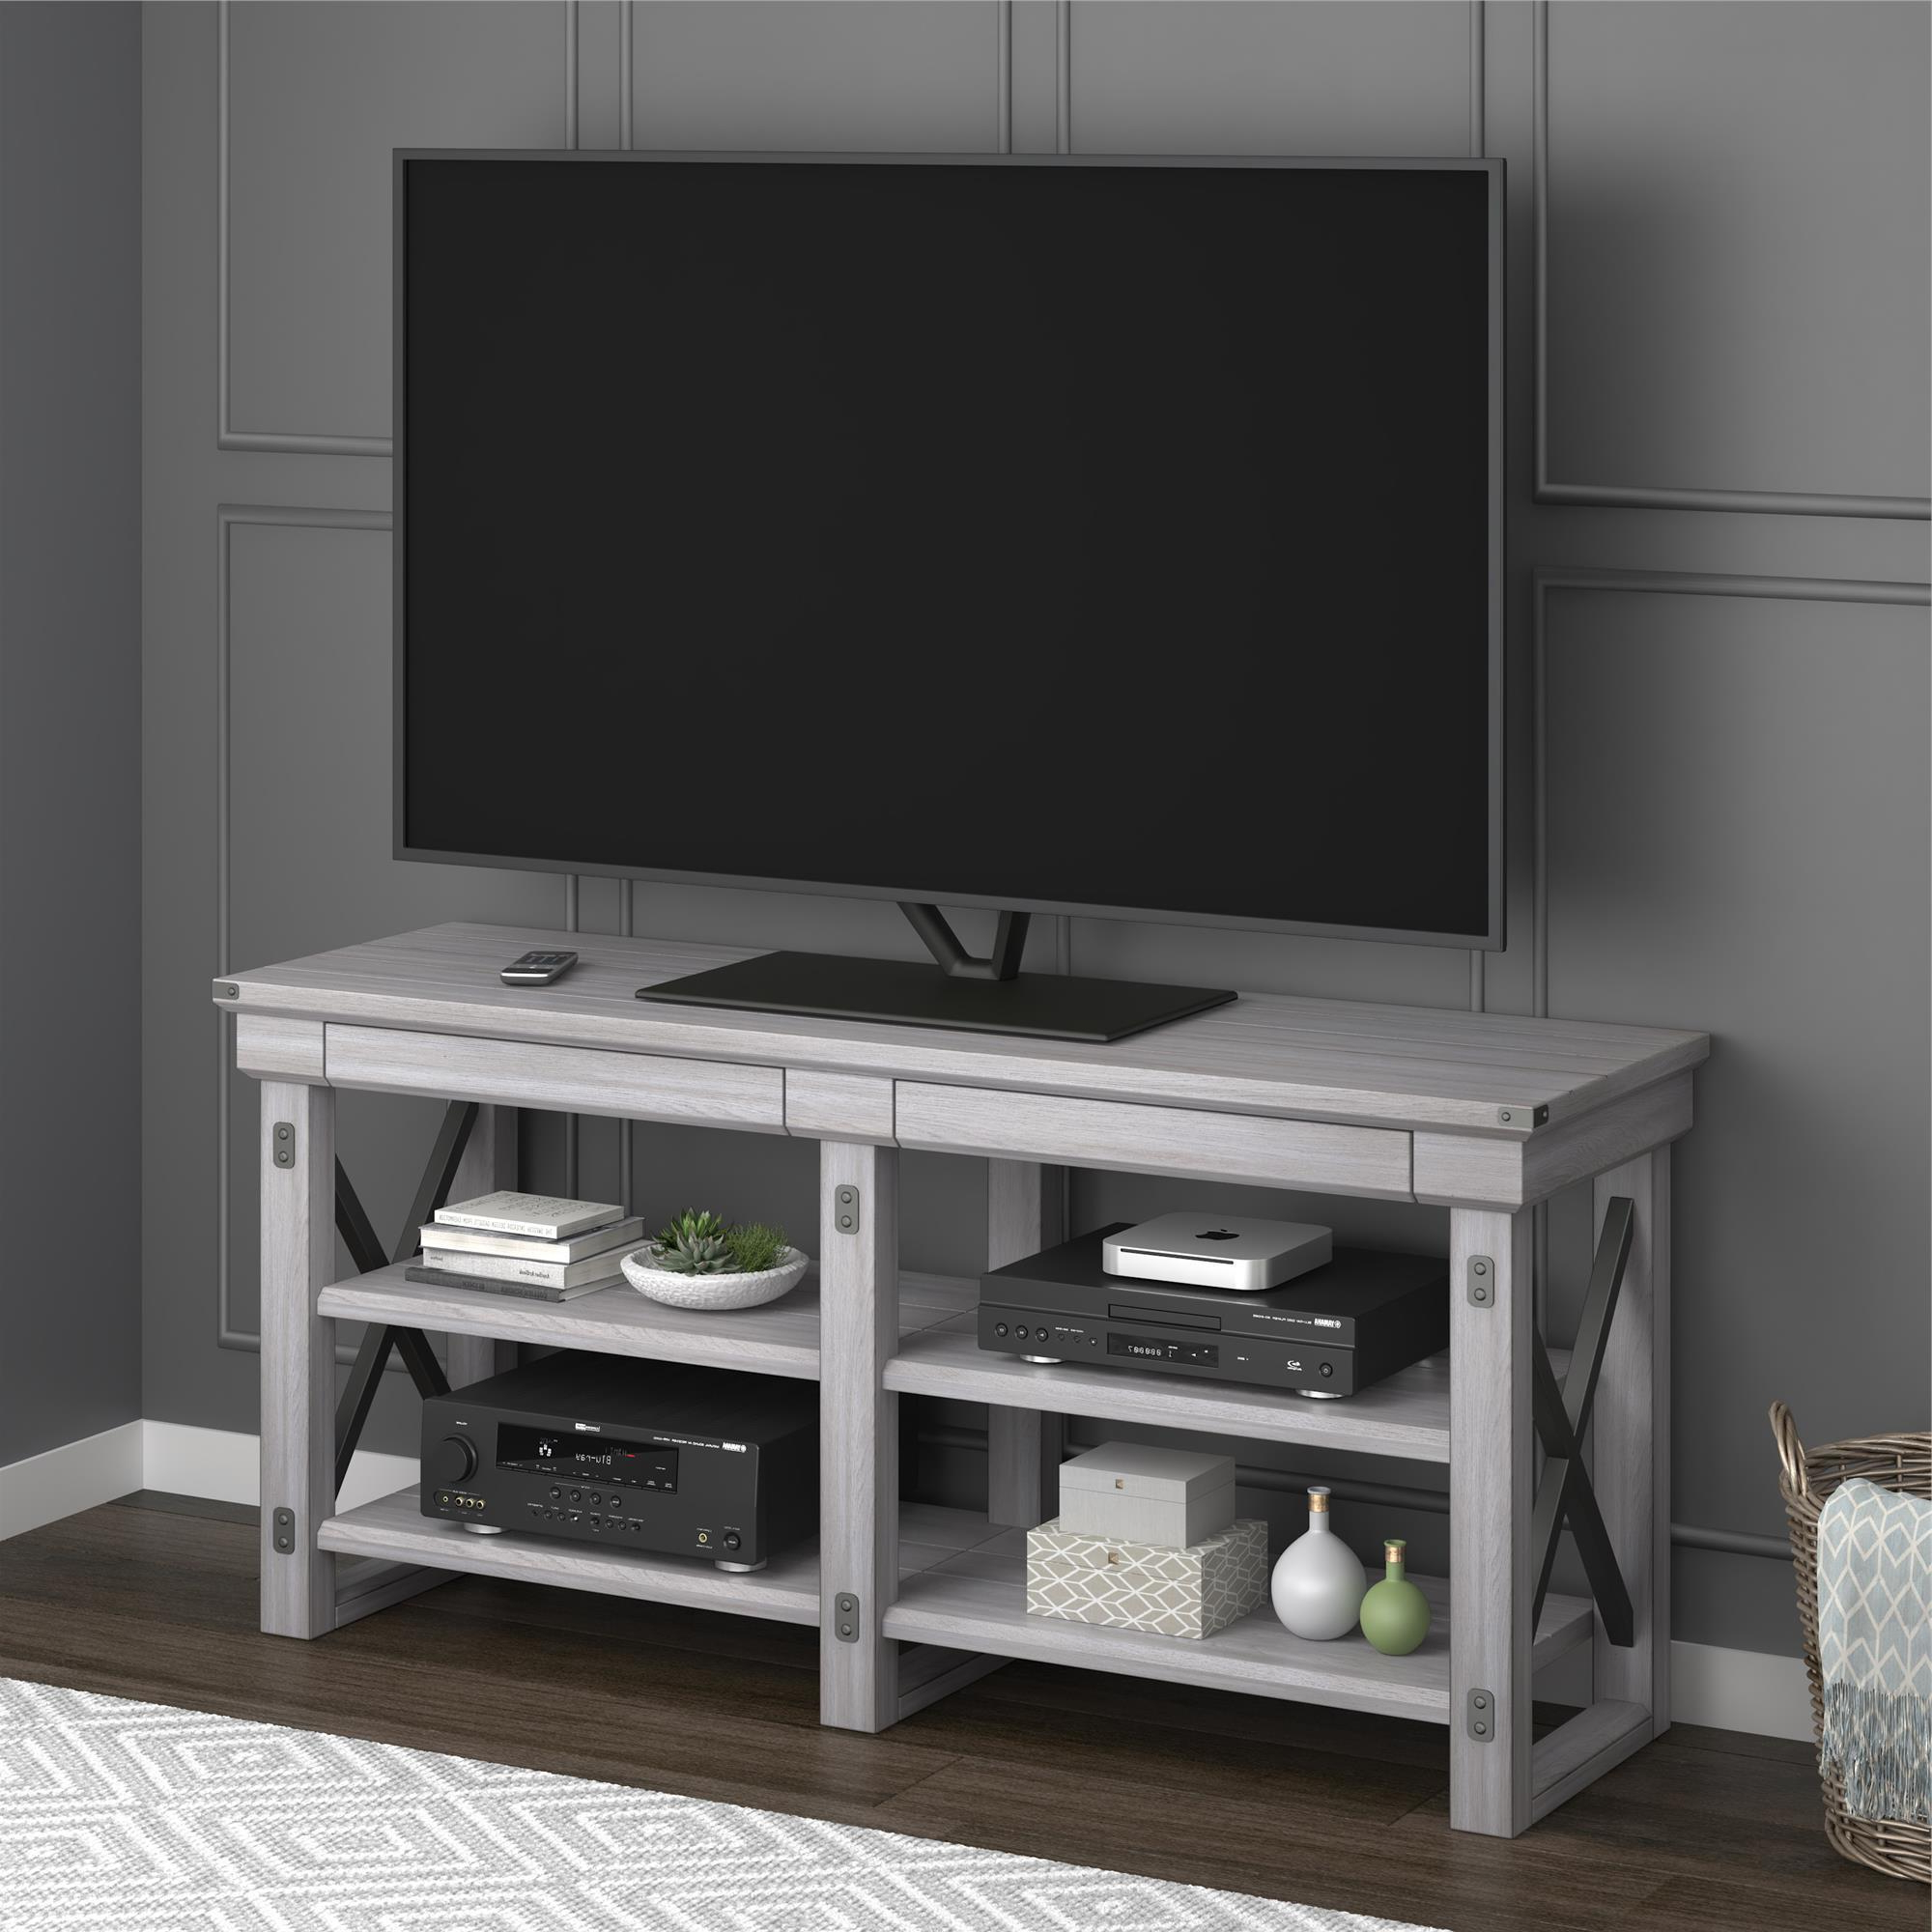 Rustic White Tv Stands In Most Current Shop Avenue Greene Woodgate Rustic White Tv Stand For Up To 65 Inch (View 15 of 20)